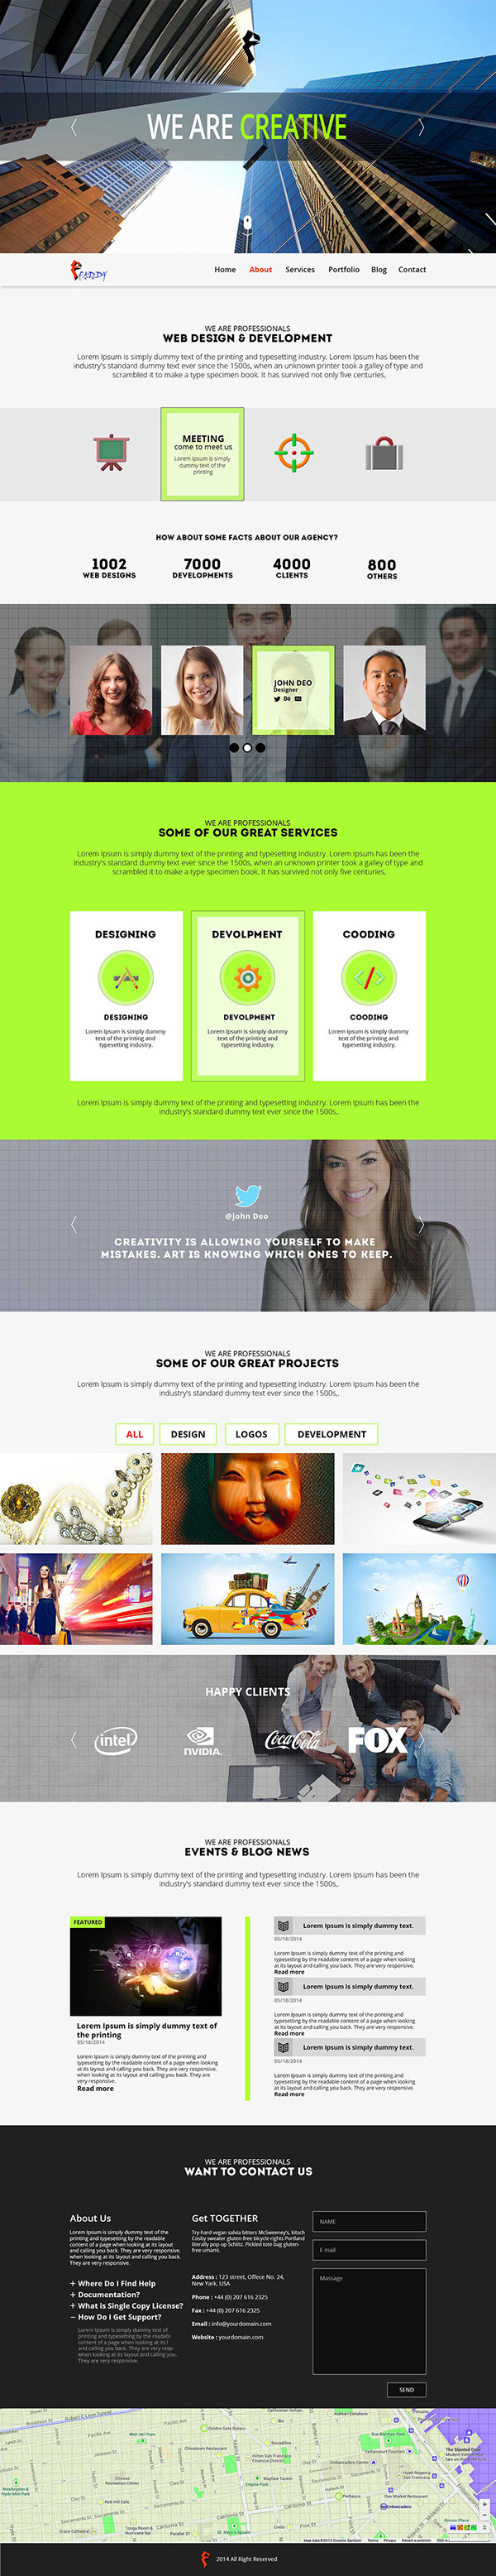 Free Faddy One Page Parallax Template On Wacom Gallery